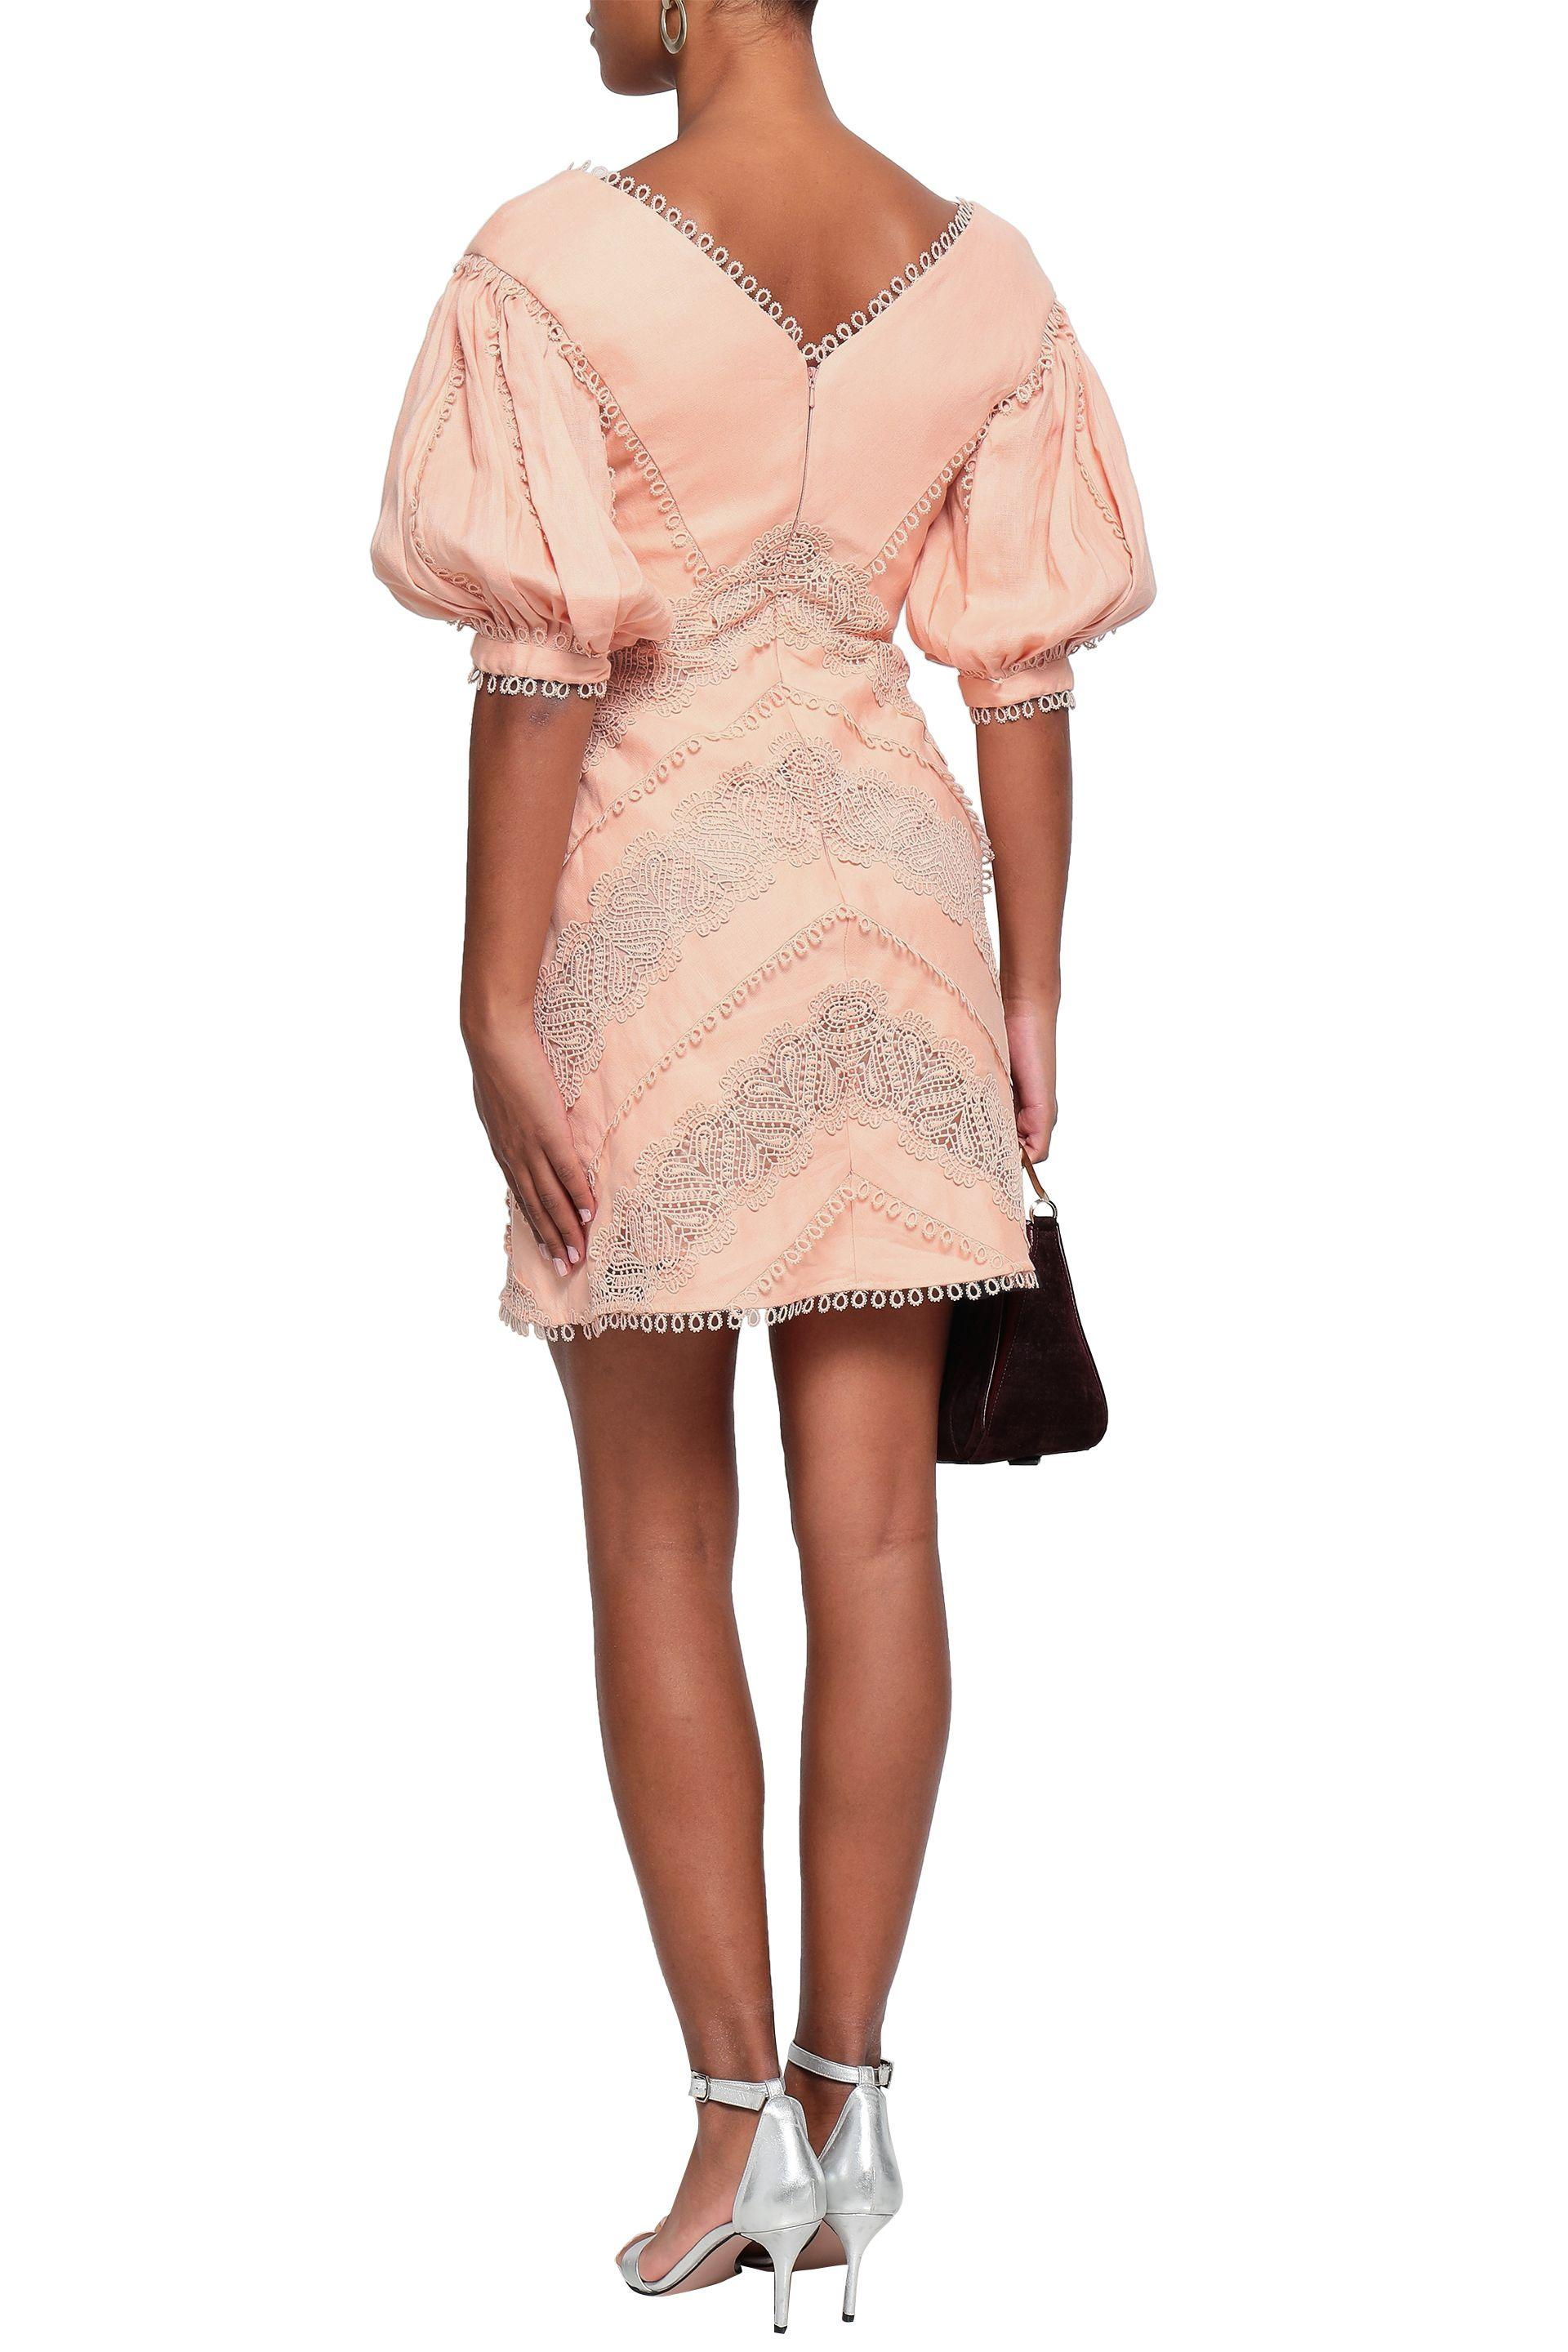 5d1dd4d3ba79e Tap to visit site. Zimmermann - Pink Woman Guipure Lace-trimmed Gathered  Linen Mini Dress Blush - Lyst